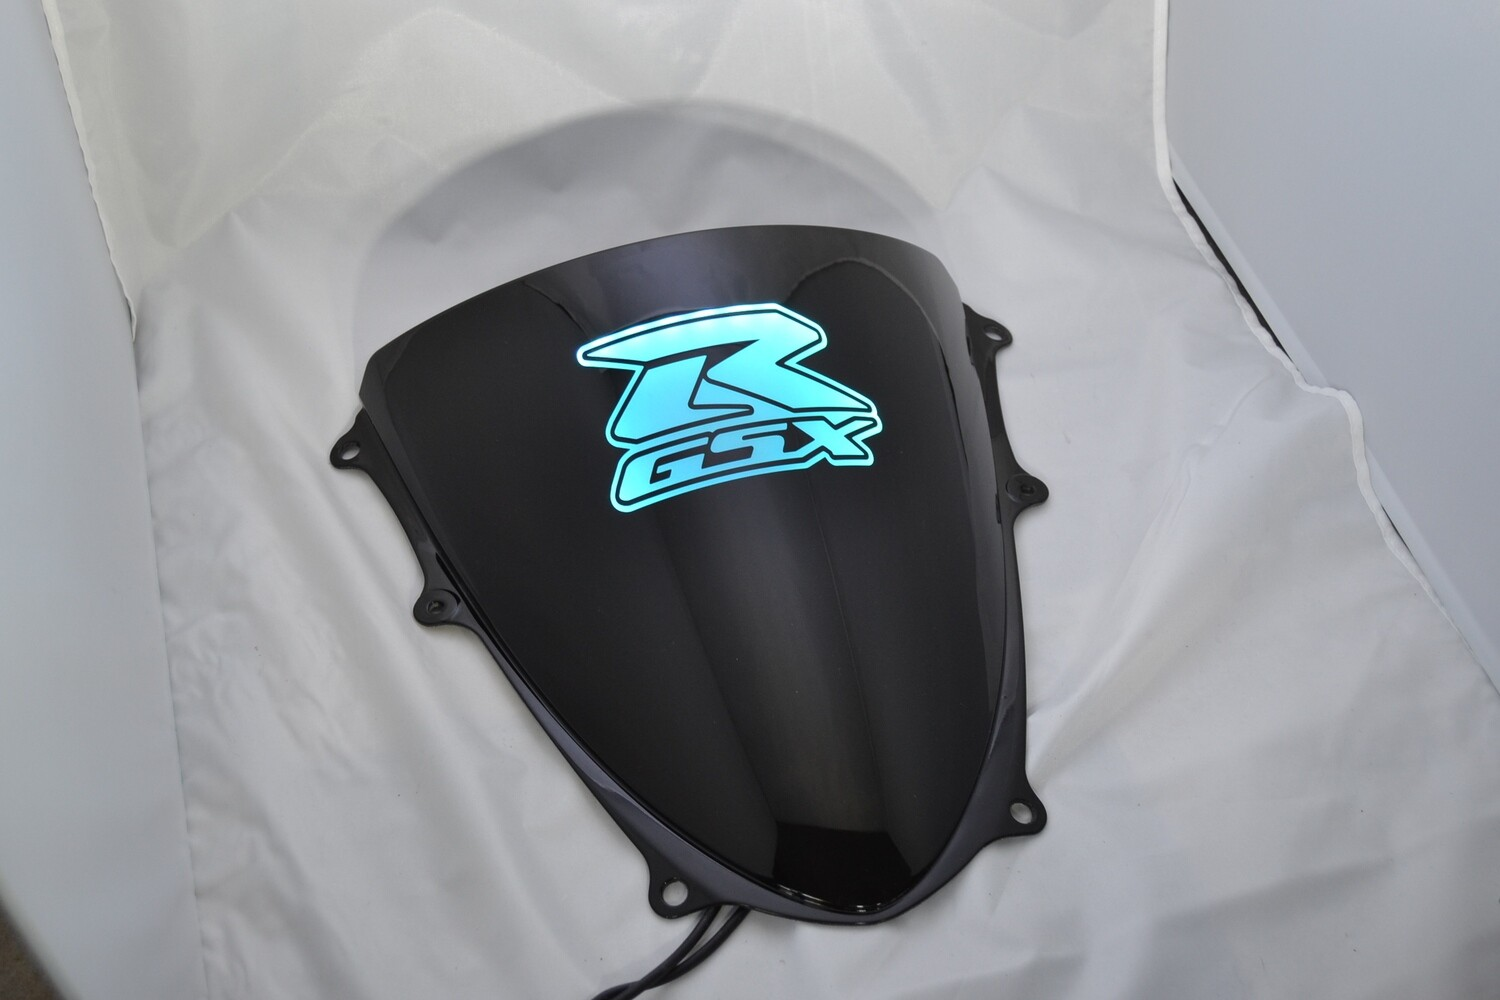 2009-2011 Suzuki GSXR 1000 Light Up Windscreen